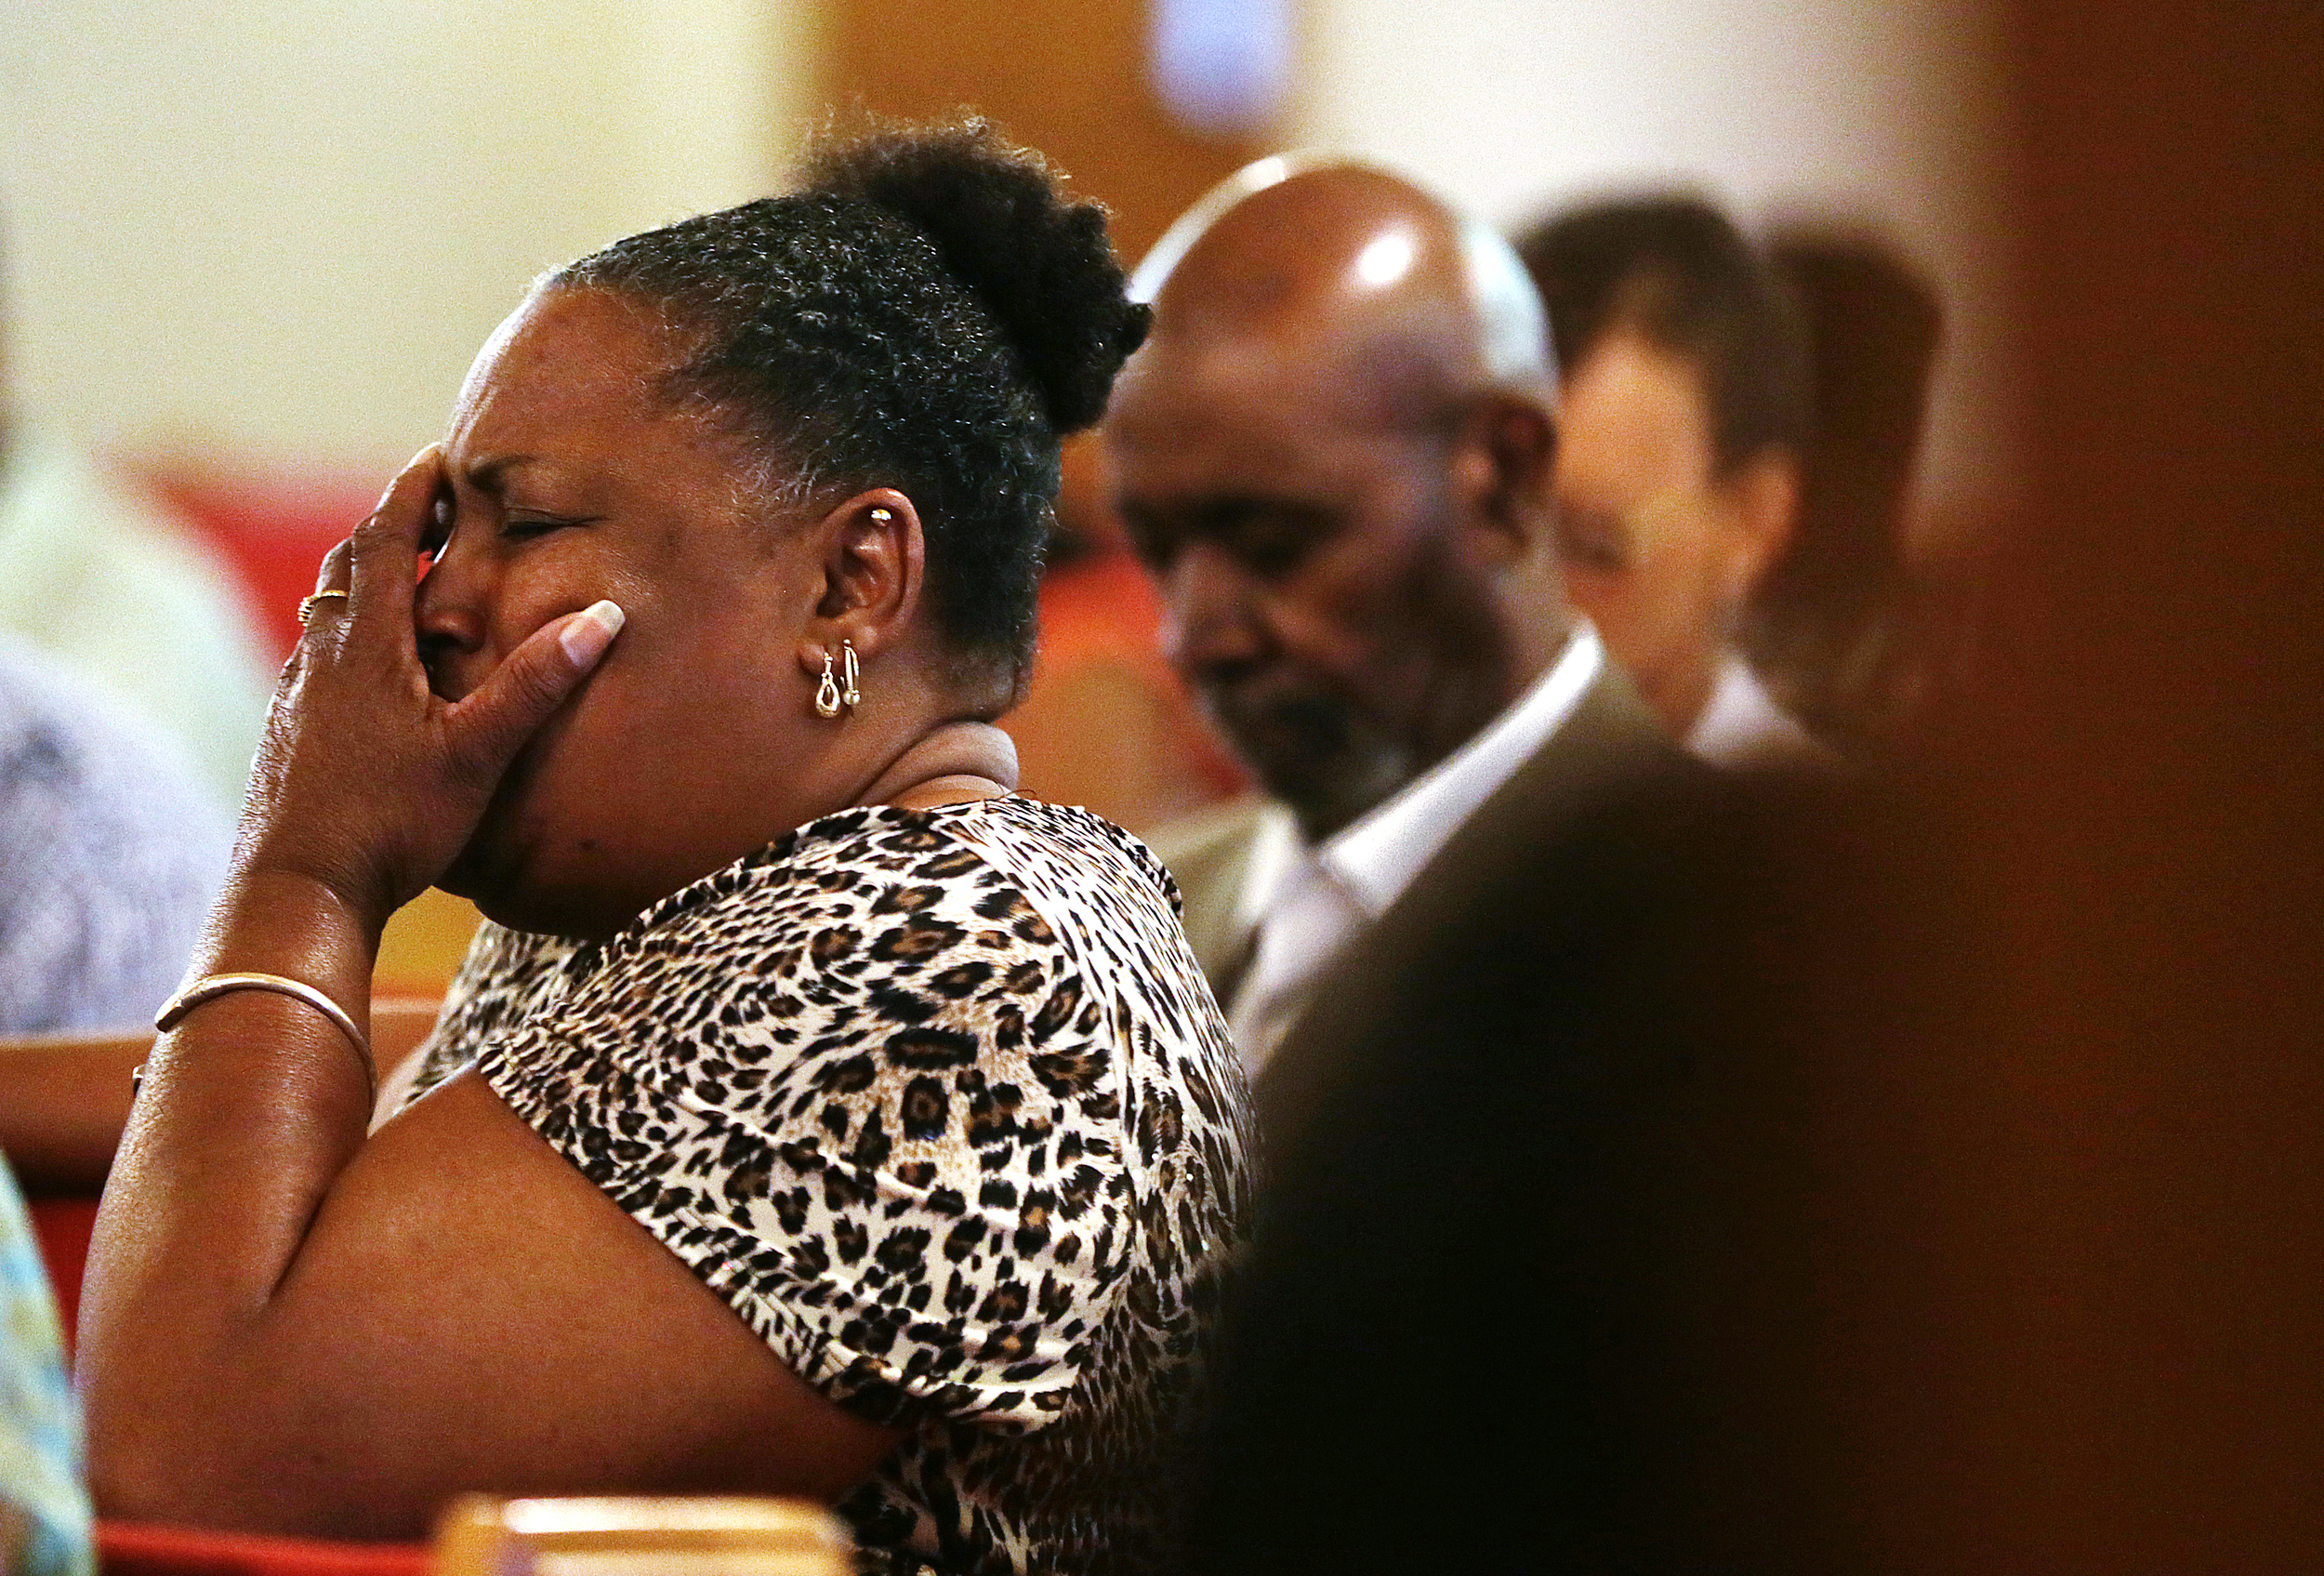 On the day following the Charleston church shooting in South Carolina, Bonnie Collins, of Brownsburg, Ind., holds her head in grief at the start of a vigil service held at St. John African Methodist Episcopal church for the shooting's victims, Indianapolis, Ind., June 18, 2015.